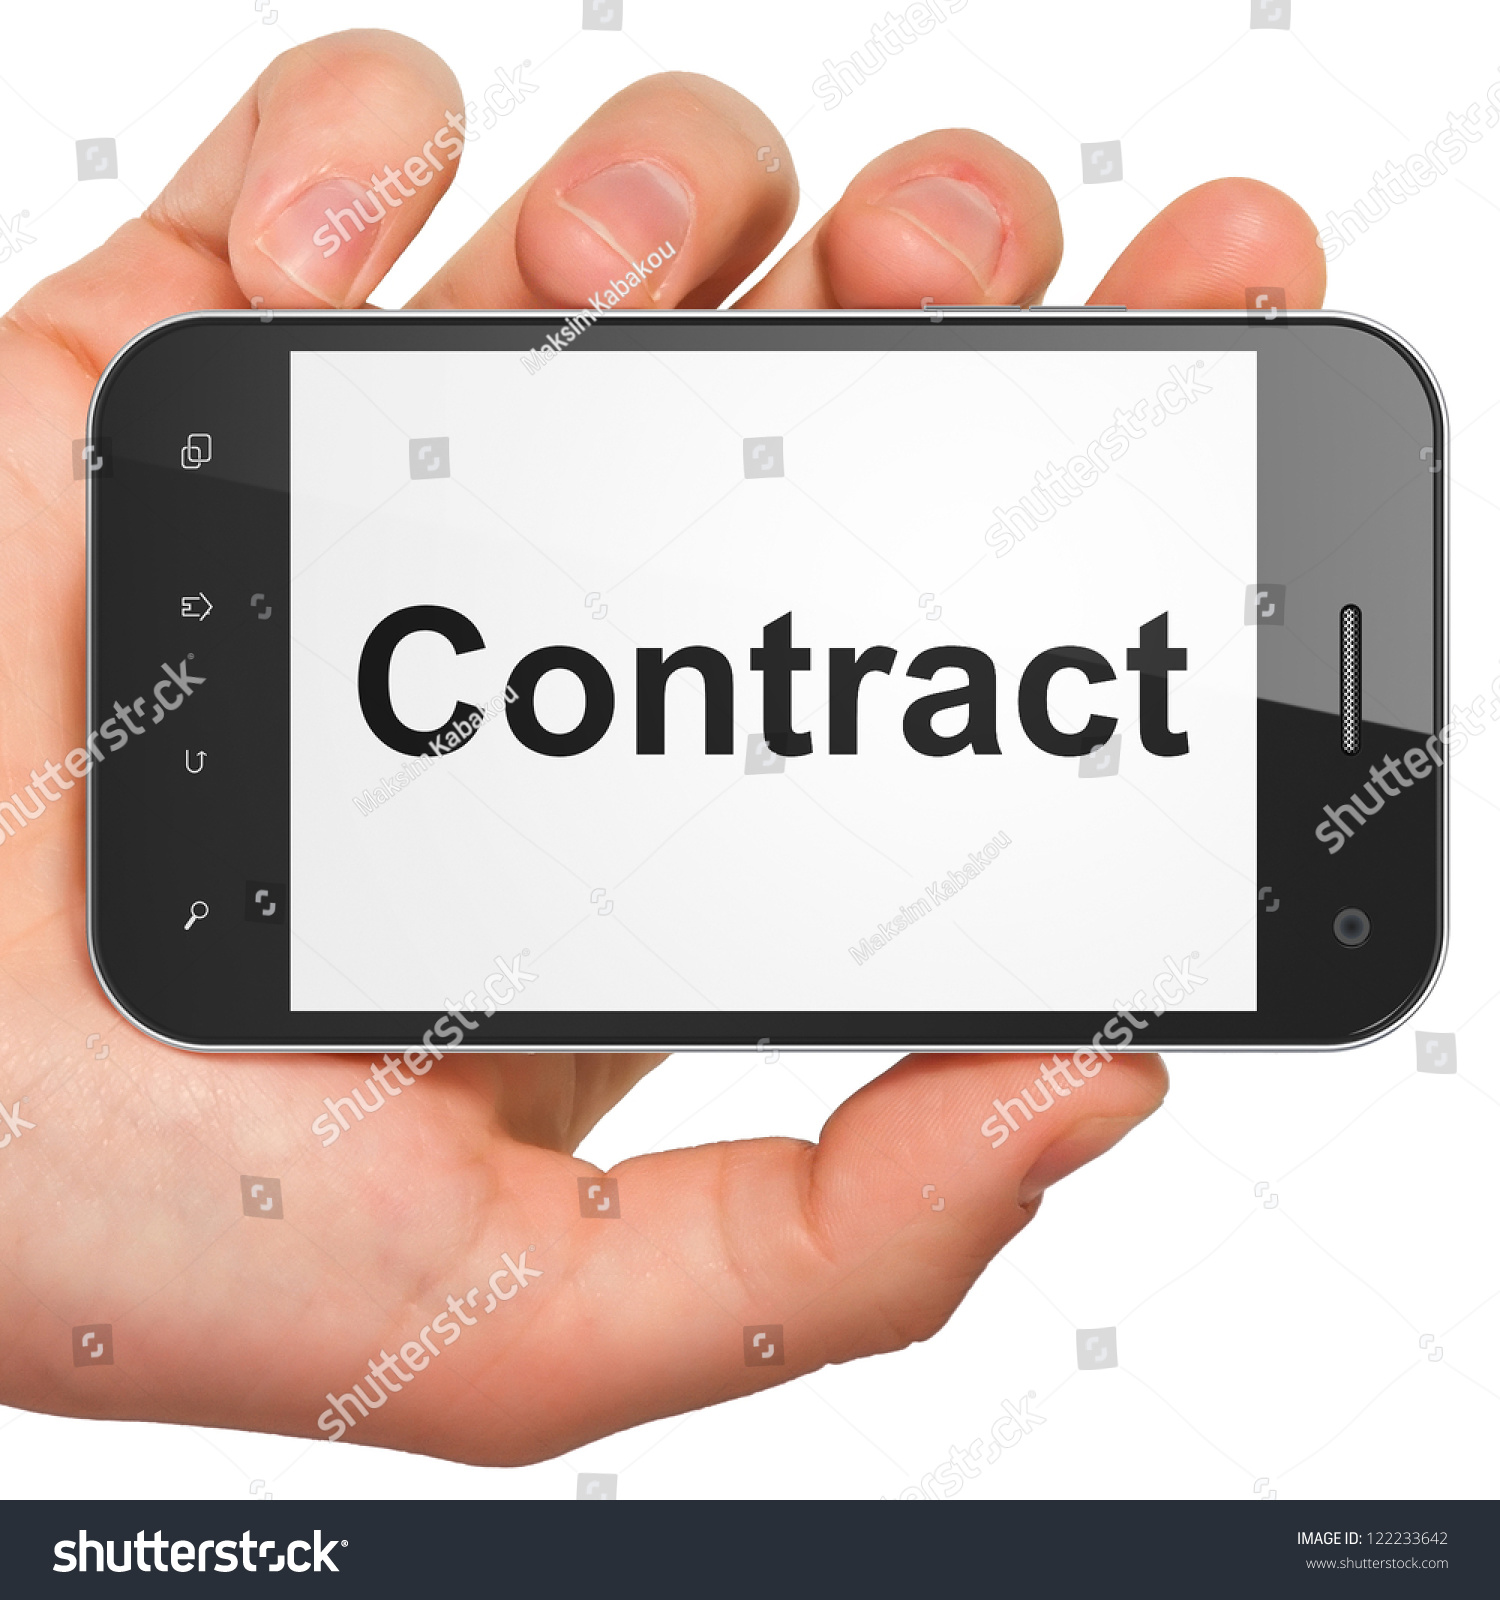 Hand Holding Smartphone Word Contract On Illustration – Contract Word